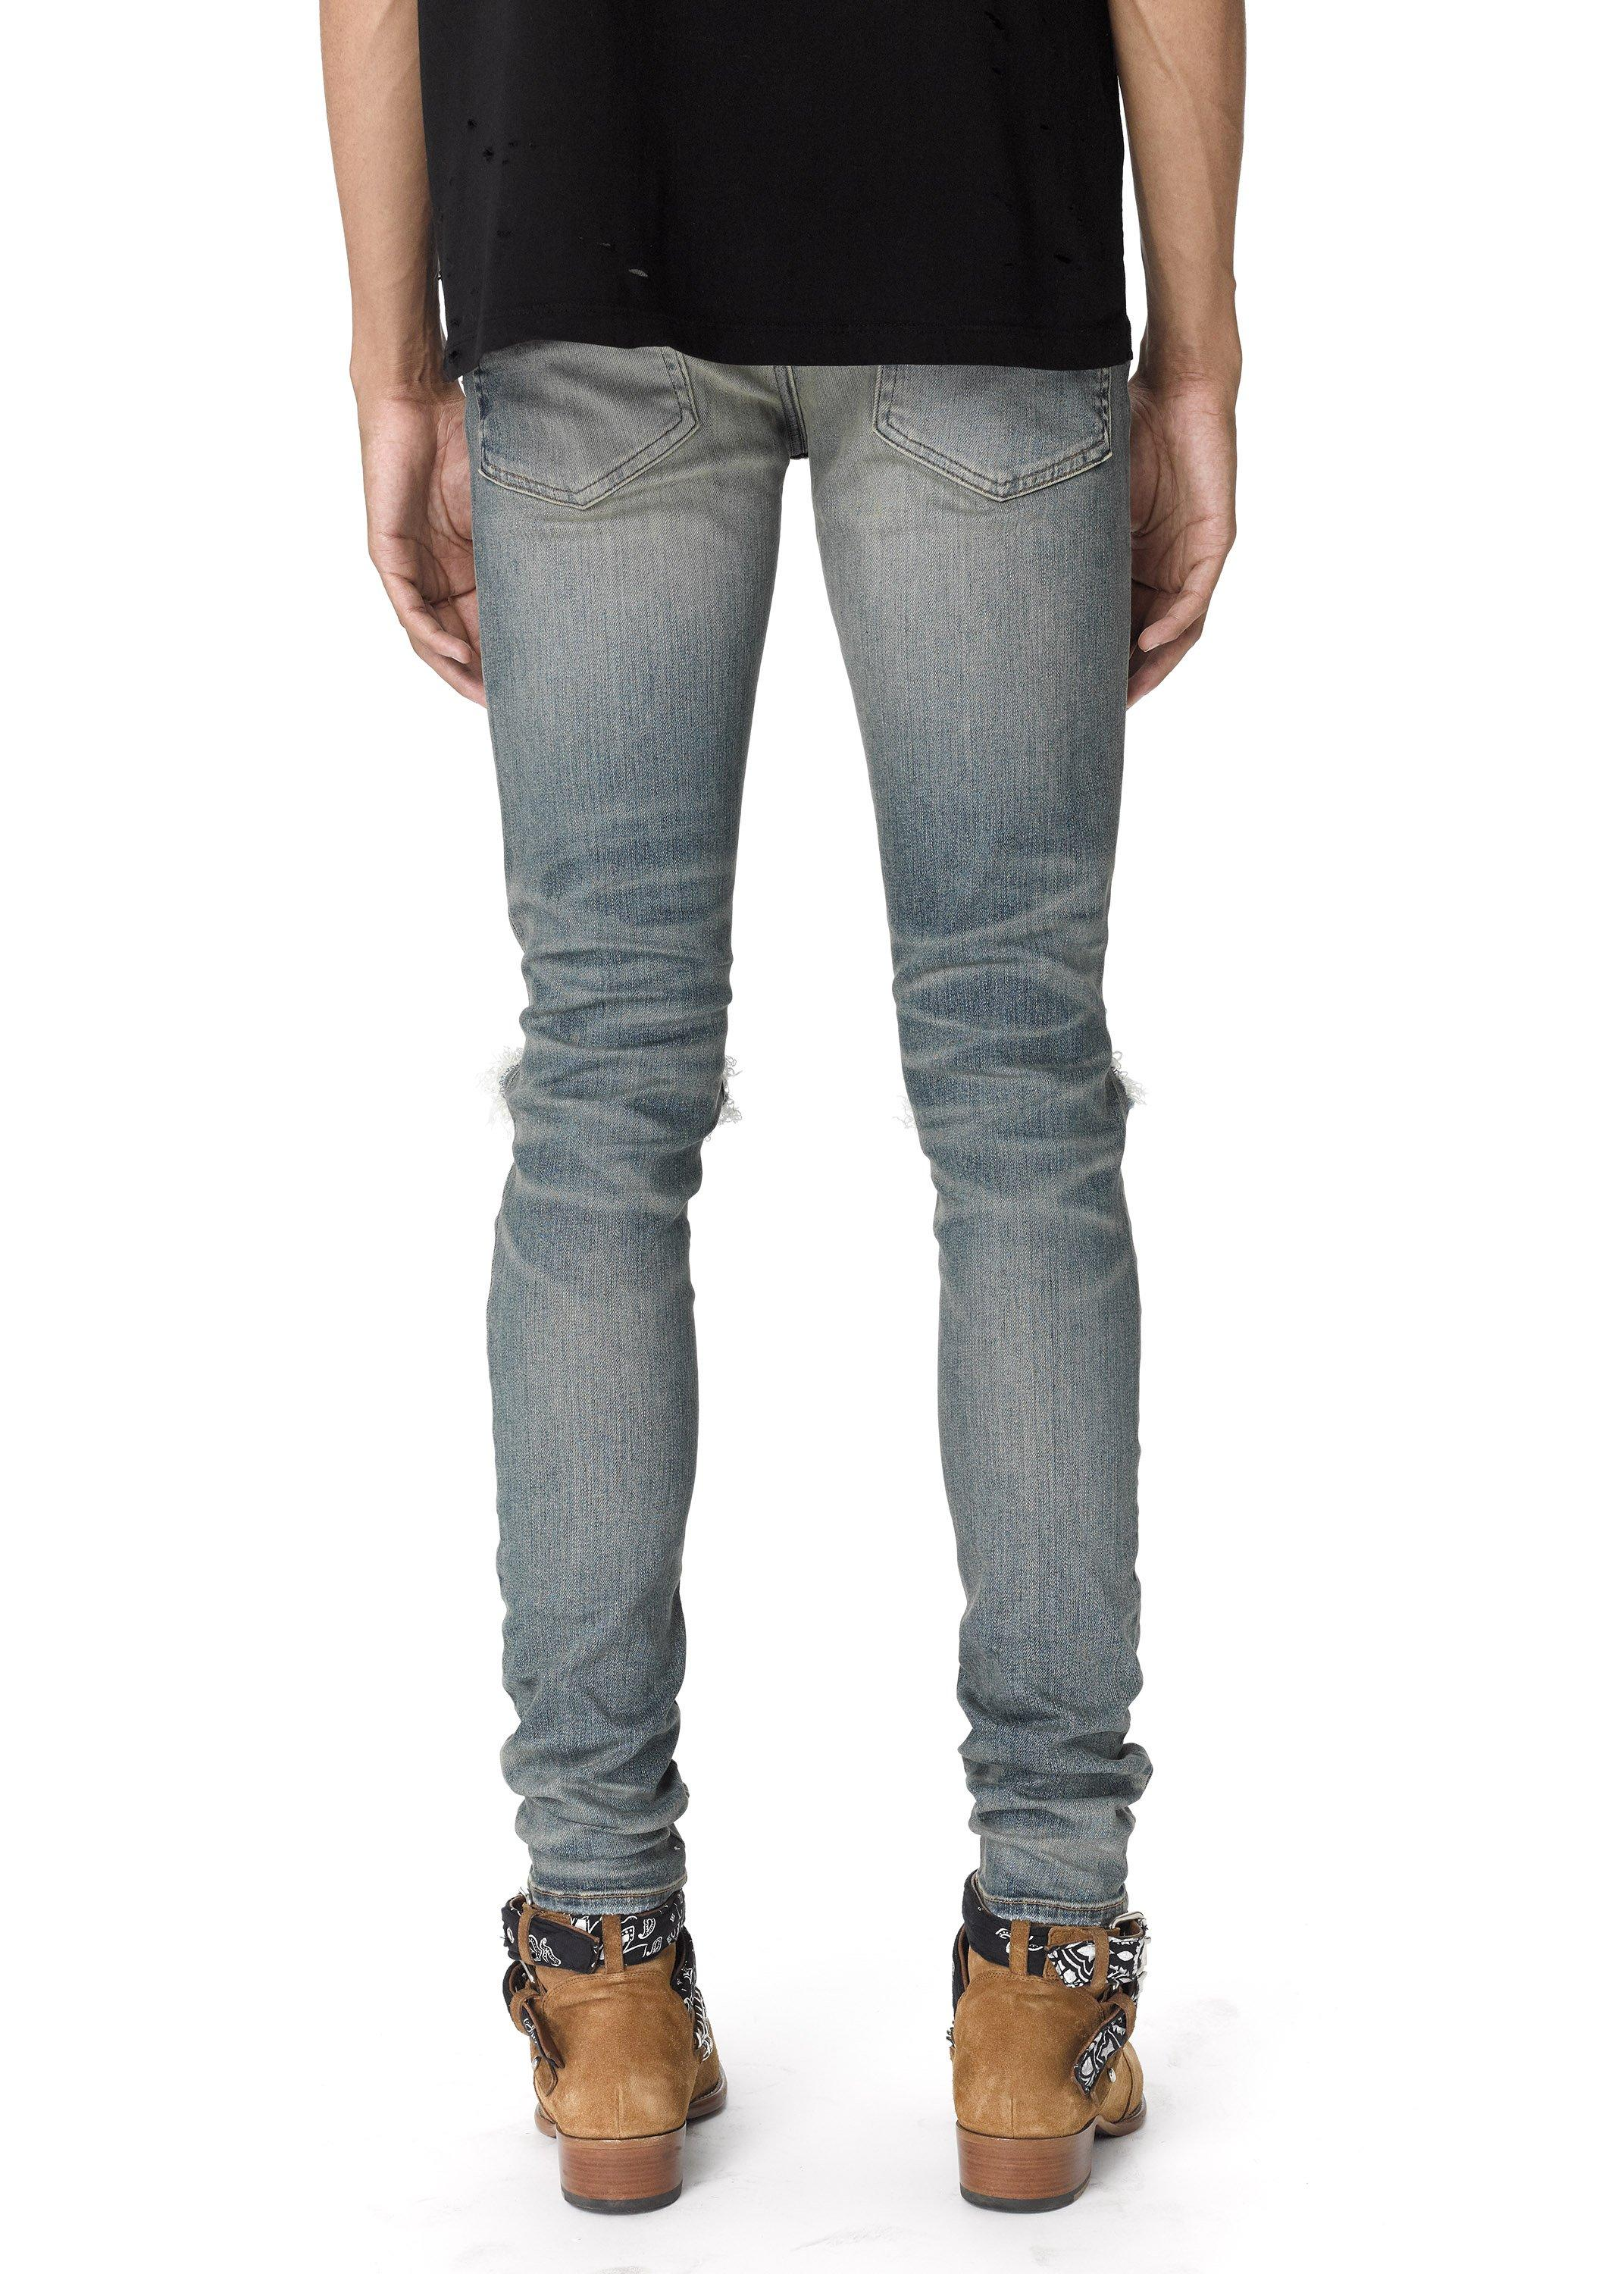 OEM custom manufactures of cheap new style bulk wholesale ripped jeans men